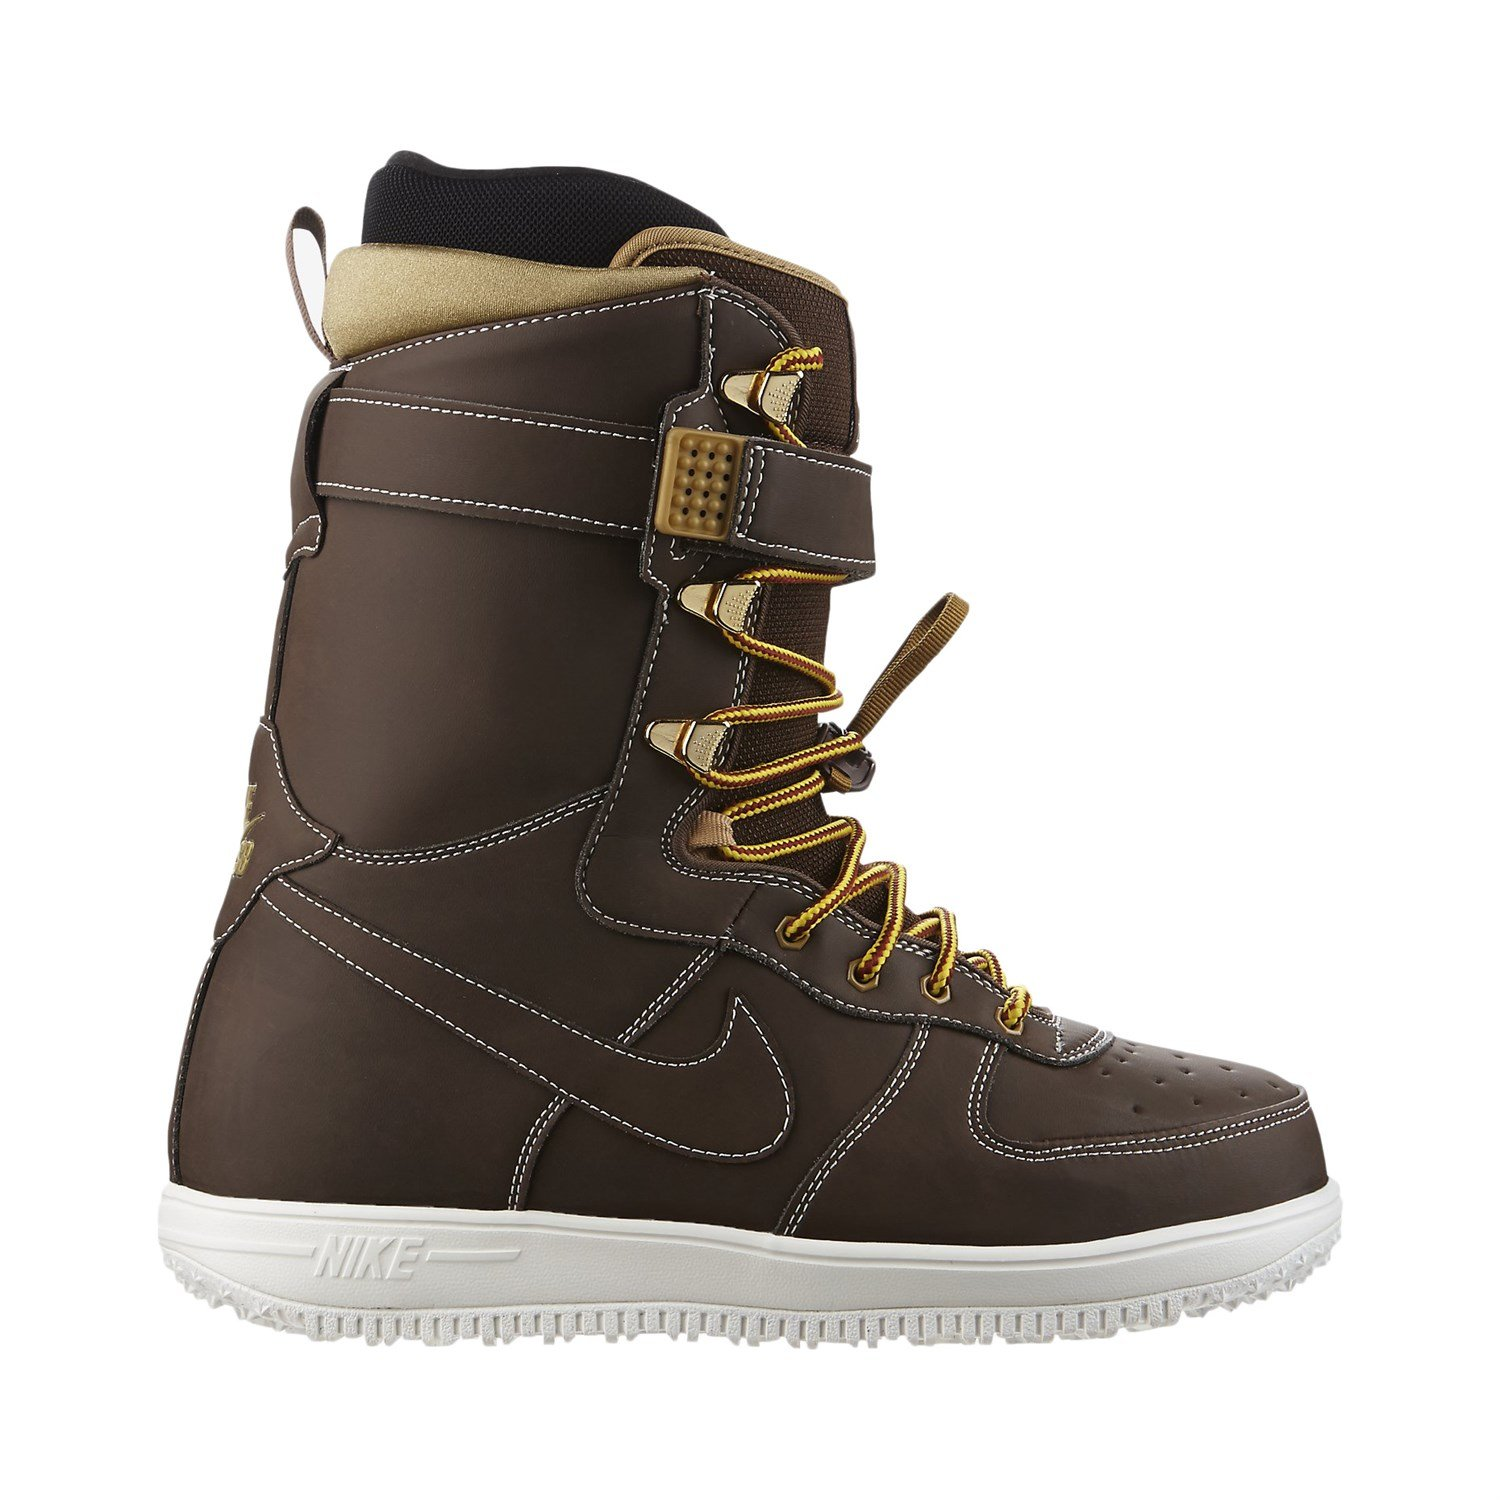 nike air snow boots outright